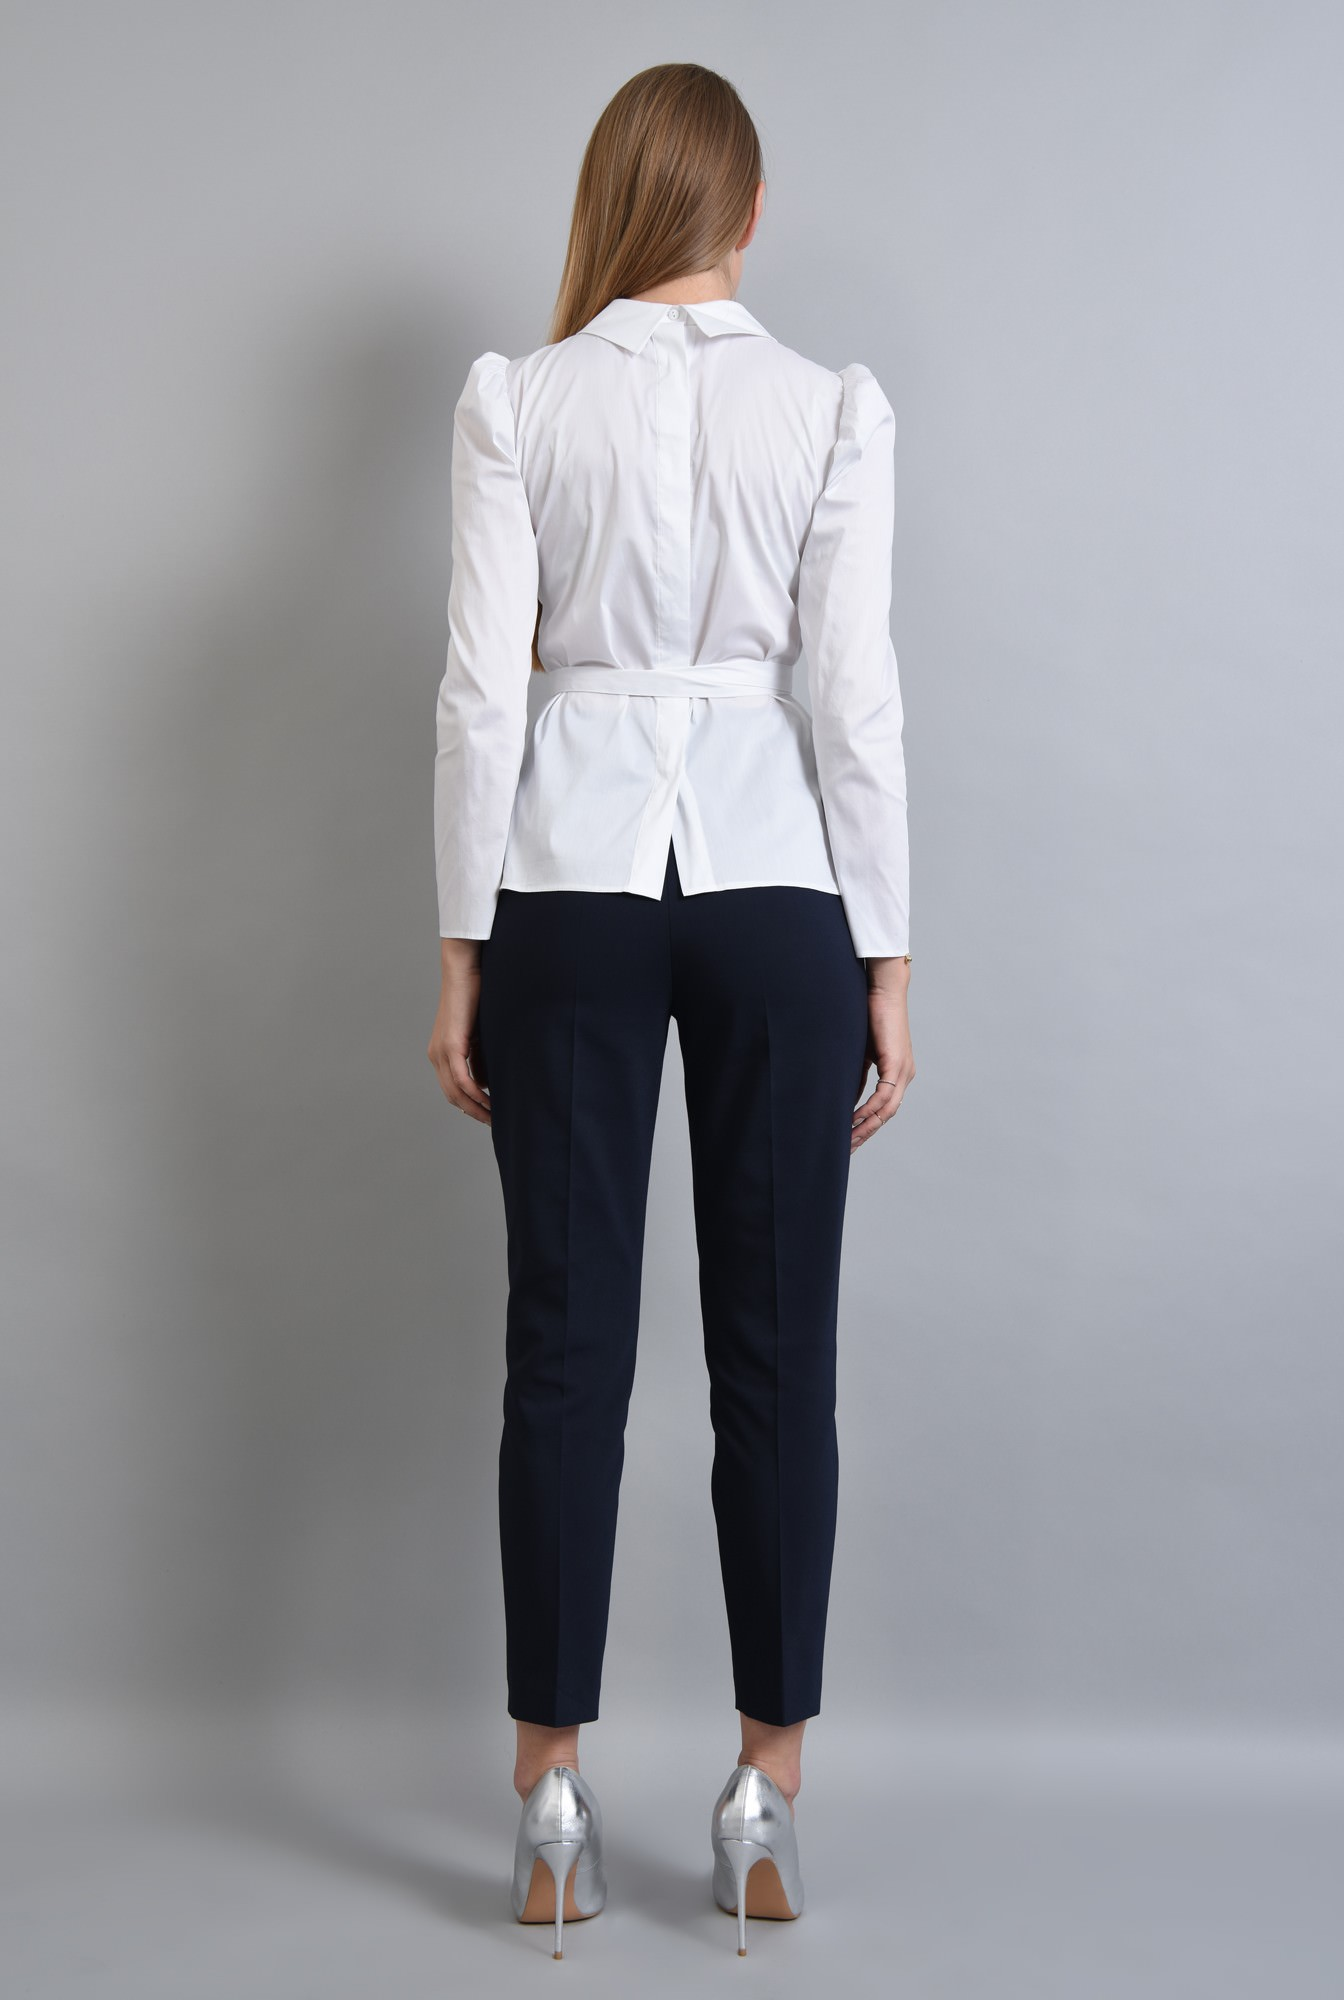 1 - PANTALON OFFICE PT 180-BLEUMARIN